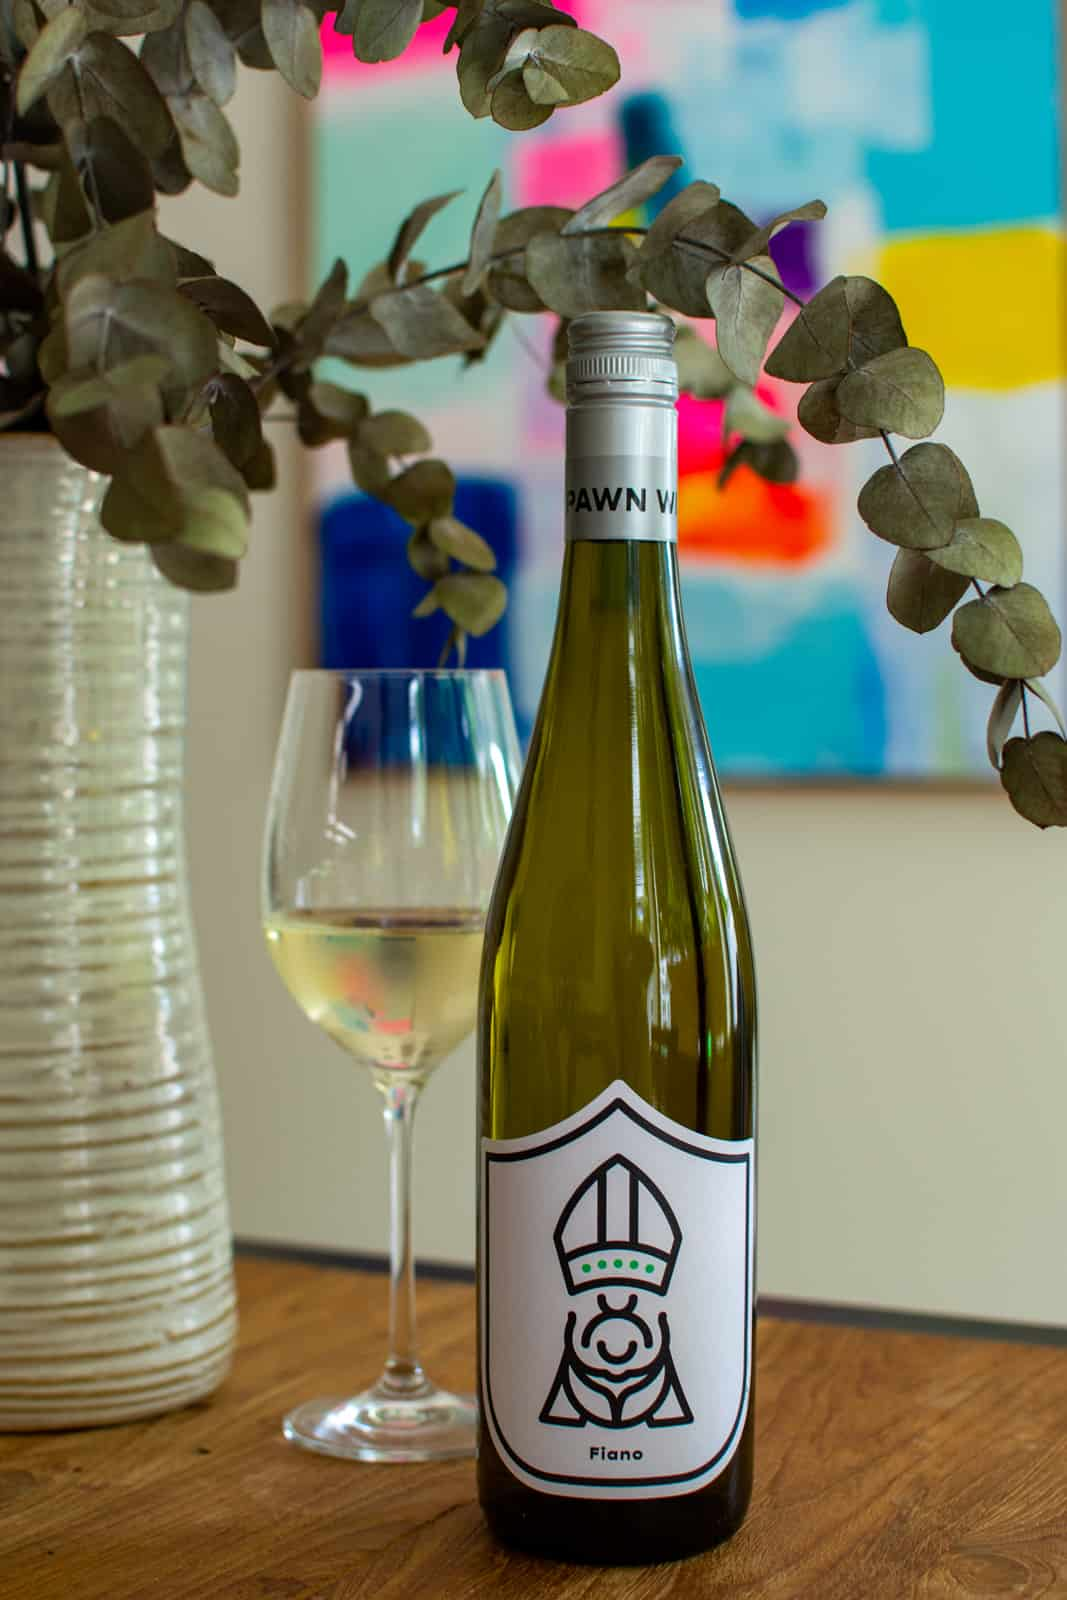 The Pawn Wine Co Fiano wine on a table with glass of wine next to it